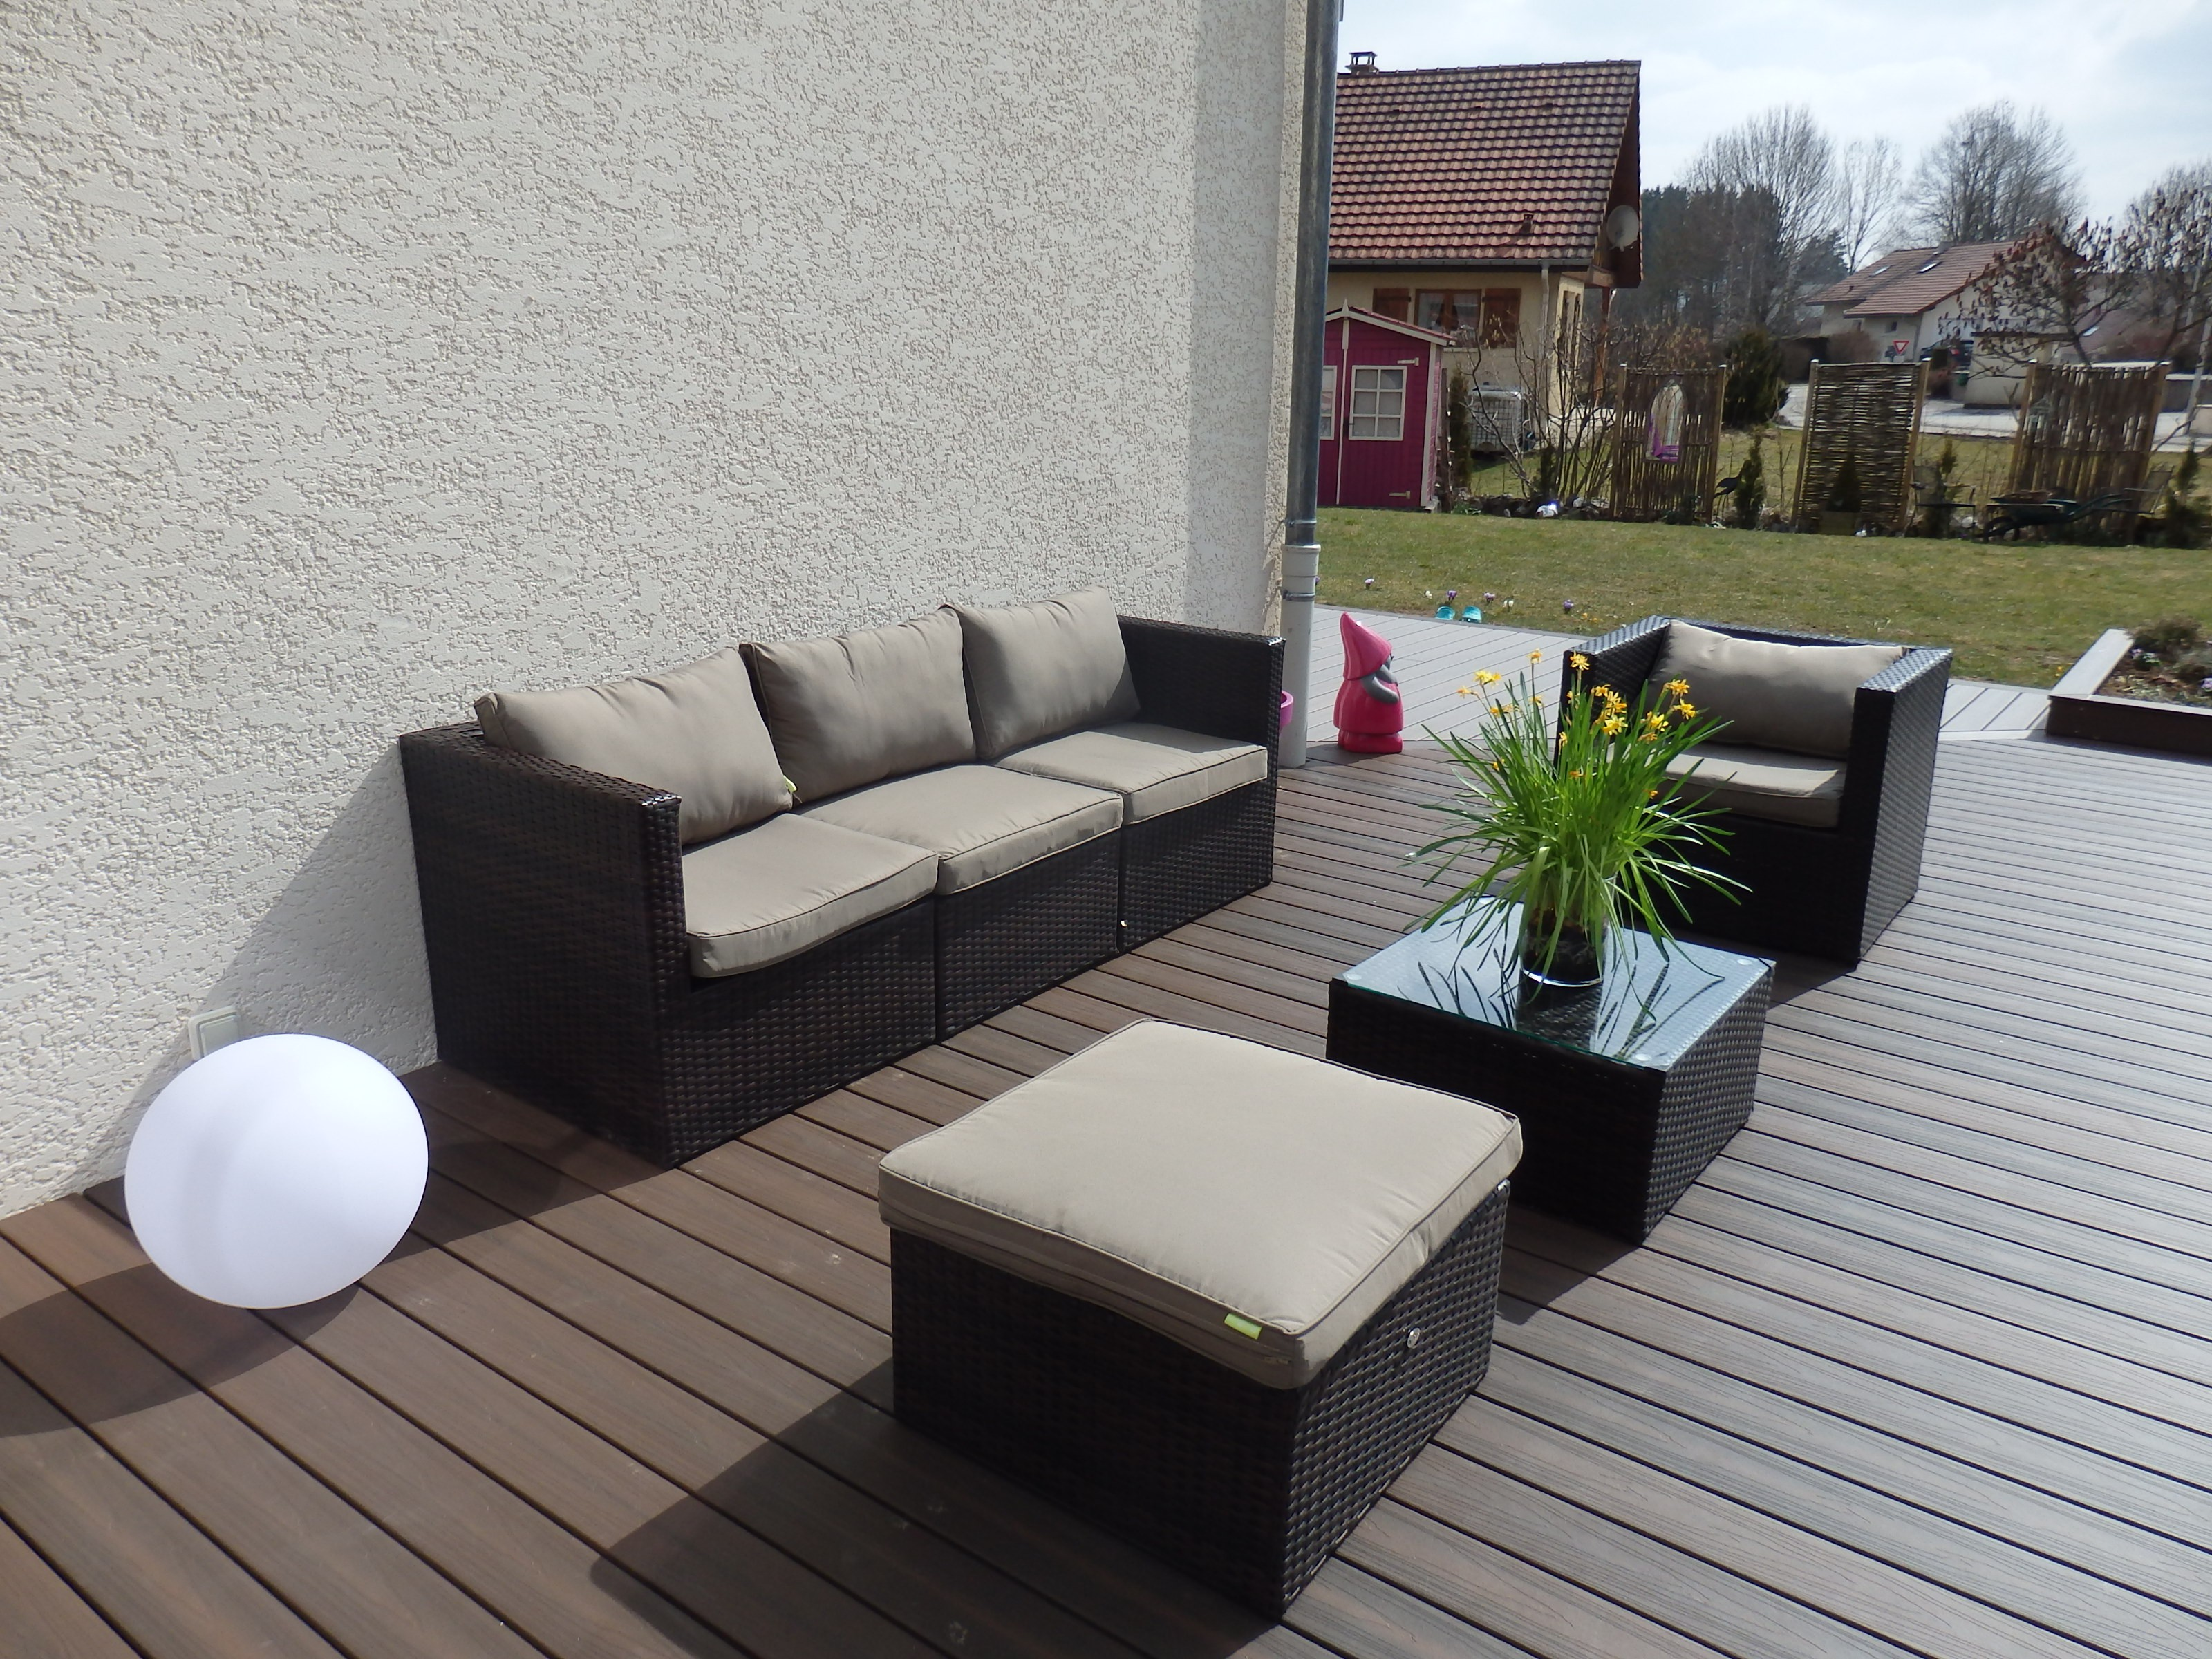 Emejing Table De Jardin Resine Gris Clair Pictures - Awesome ...